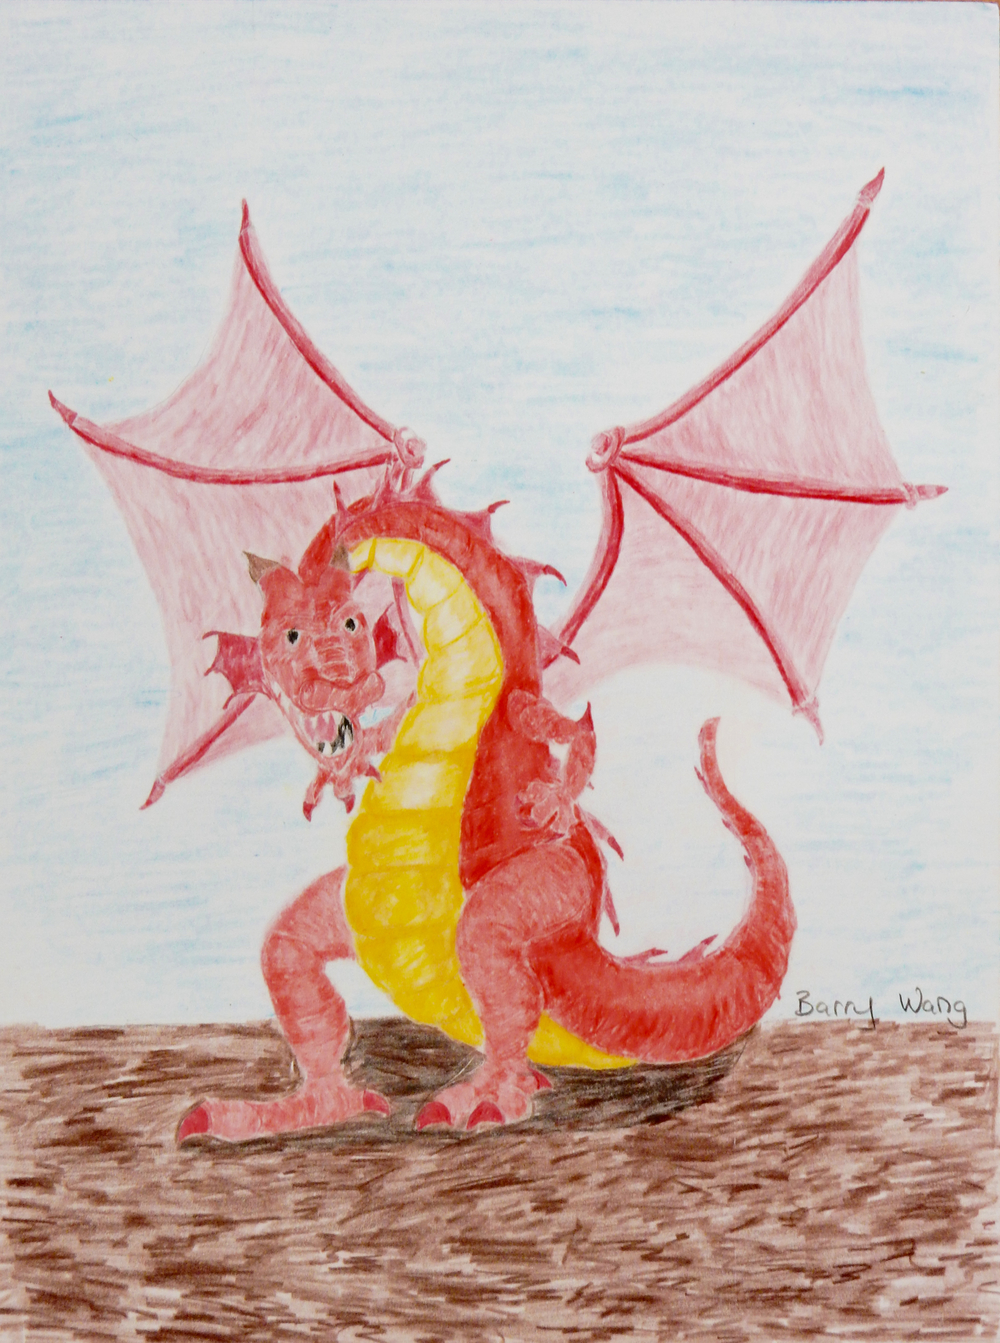 Barry Wang.11yrs.colored pencil